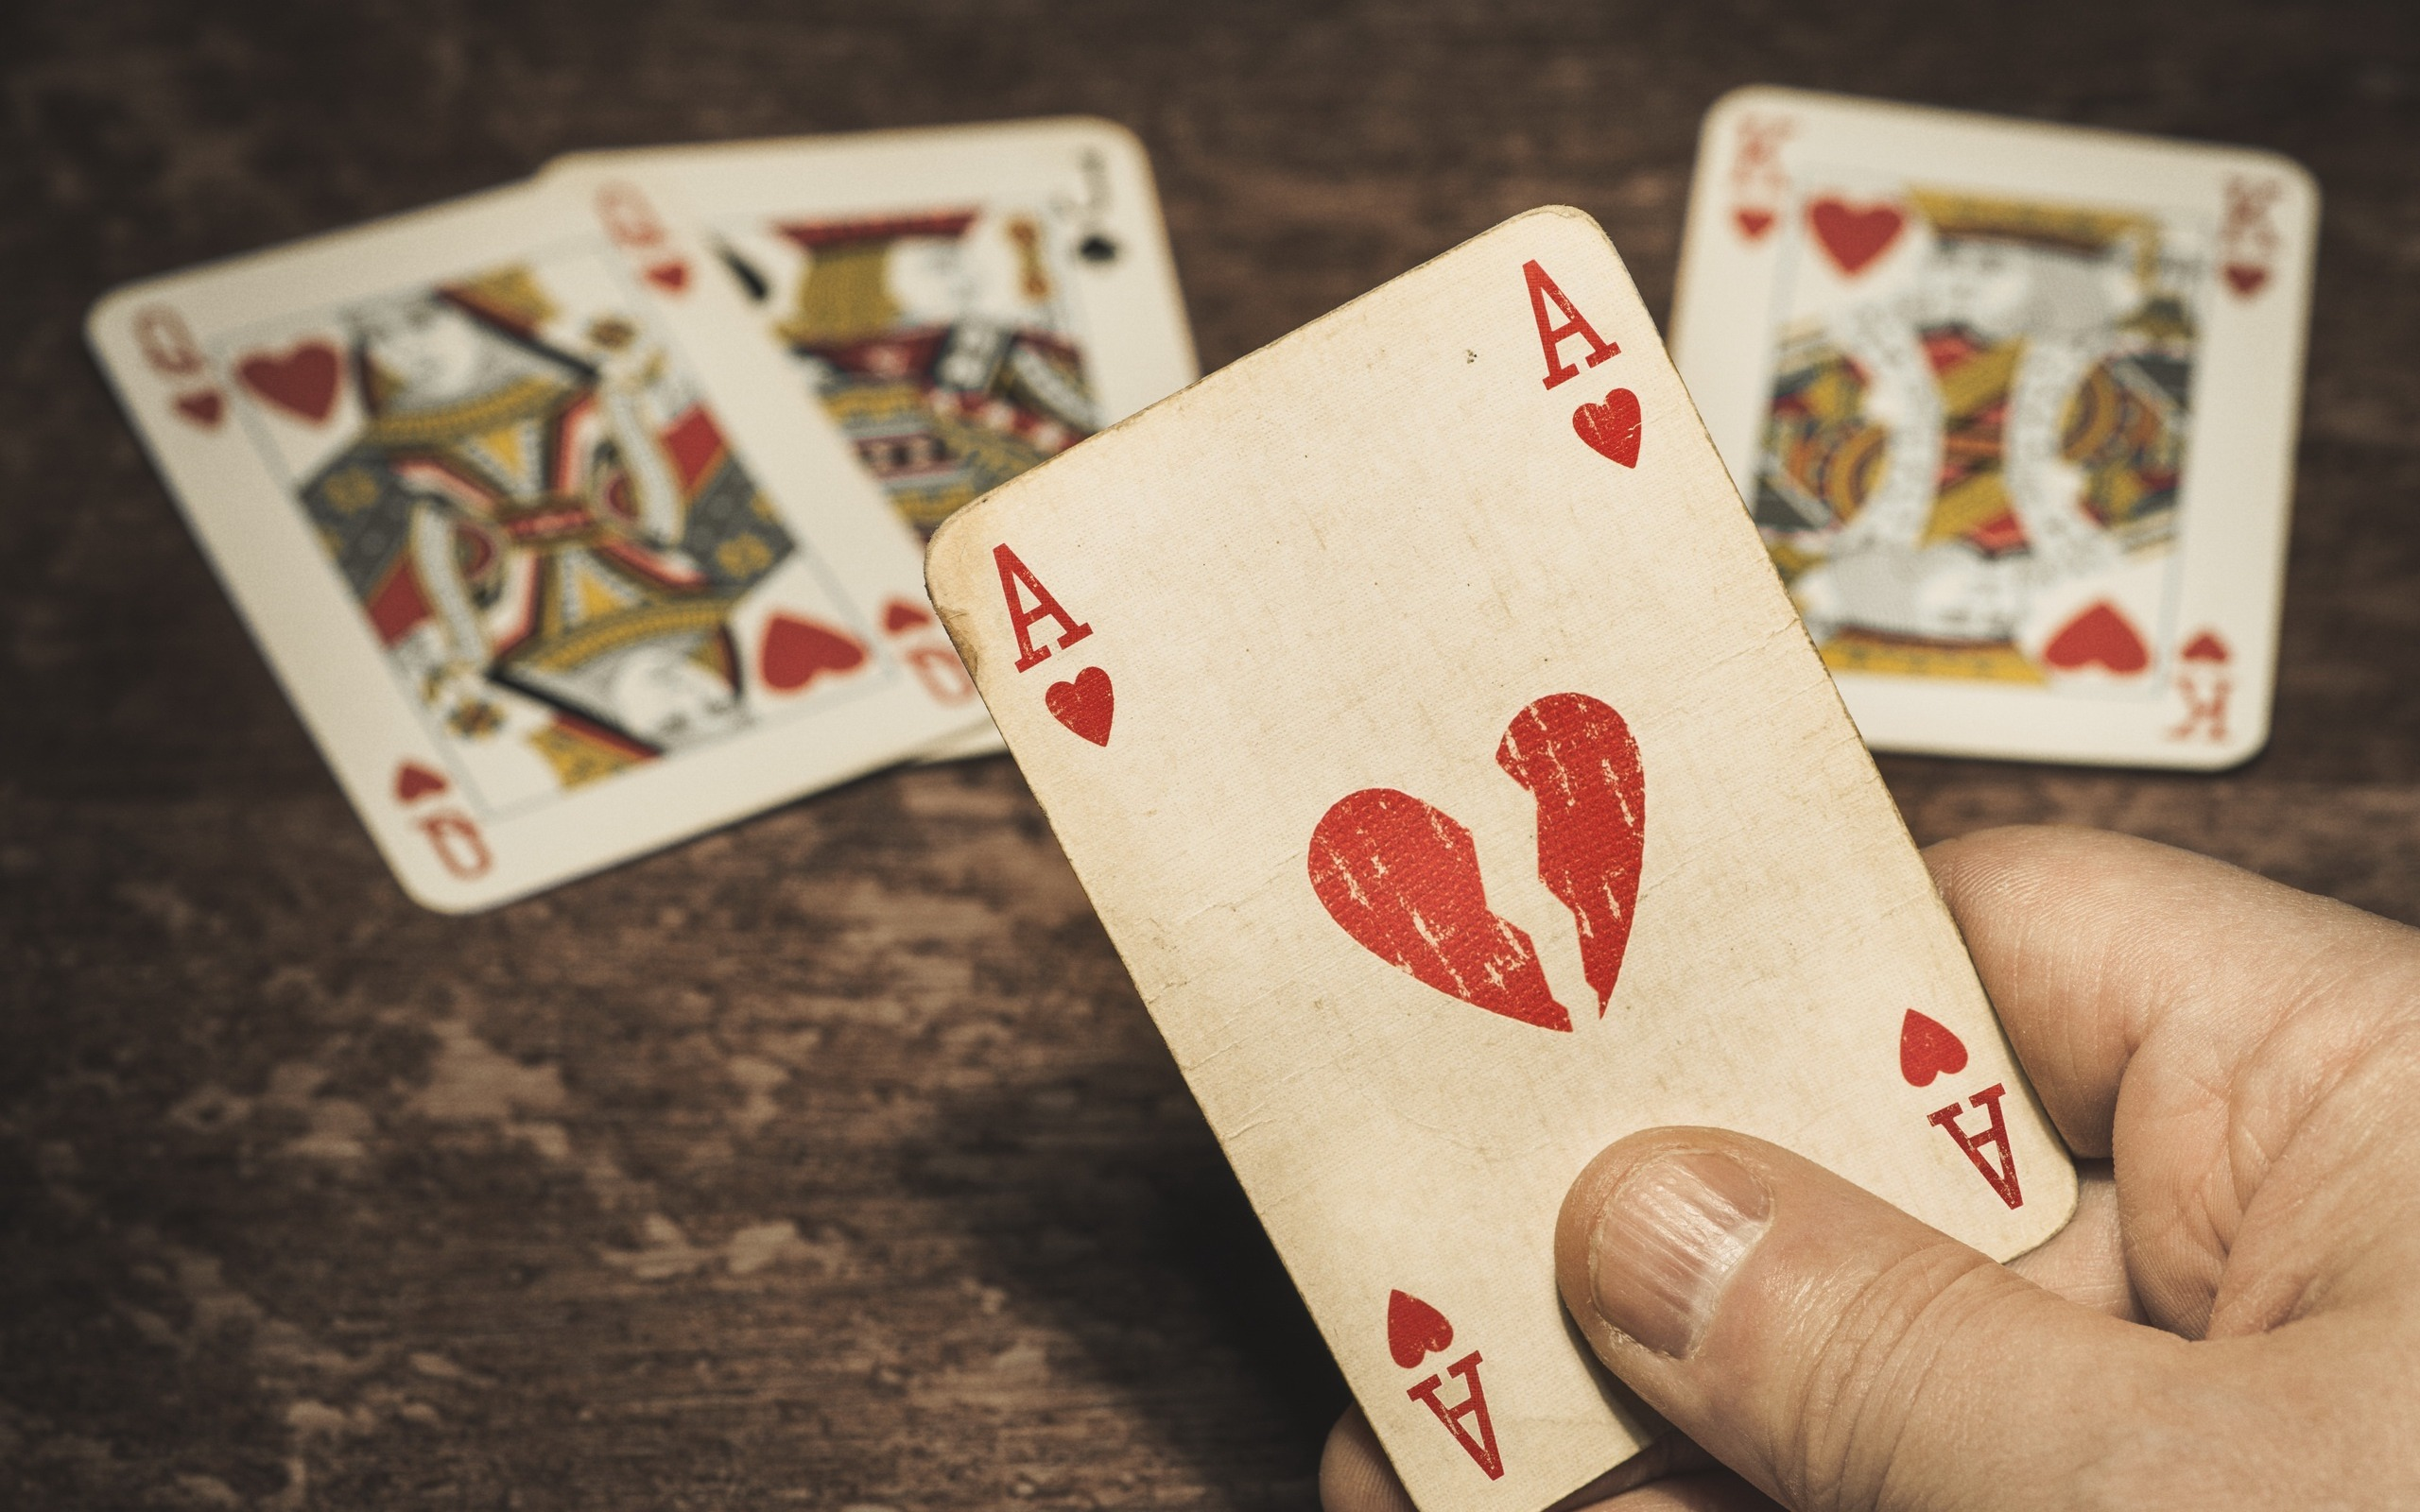 What Everybody Needs To Learn More About Online gambling